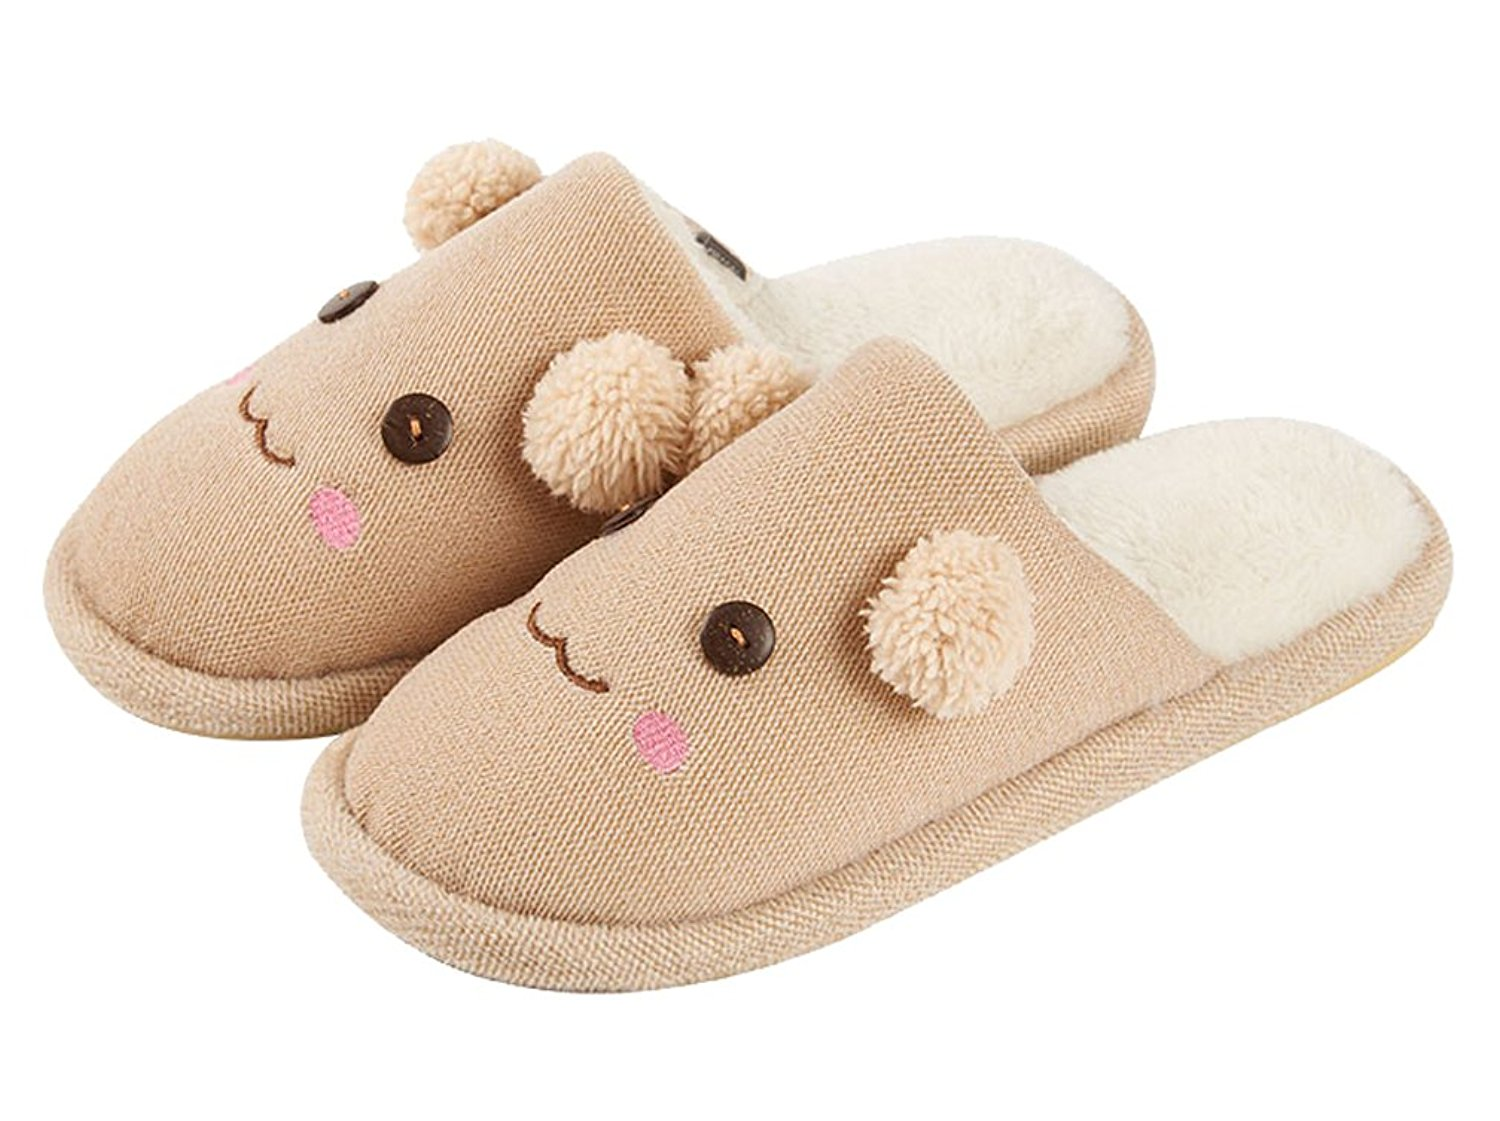 6bfee559f0a Get Quotations · Cattior Mens Cute House Indoor Funny Slippers Fluffy  Slippers